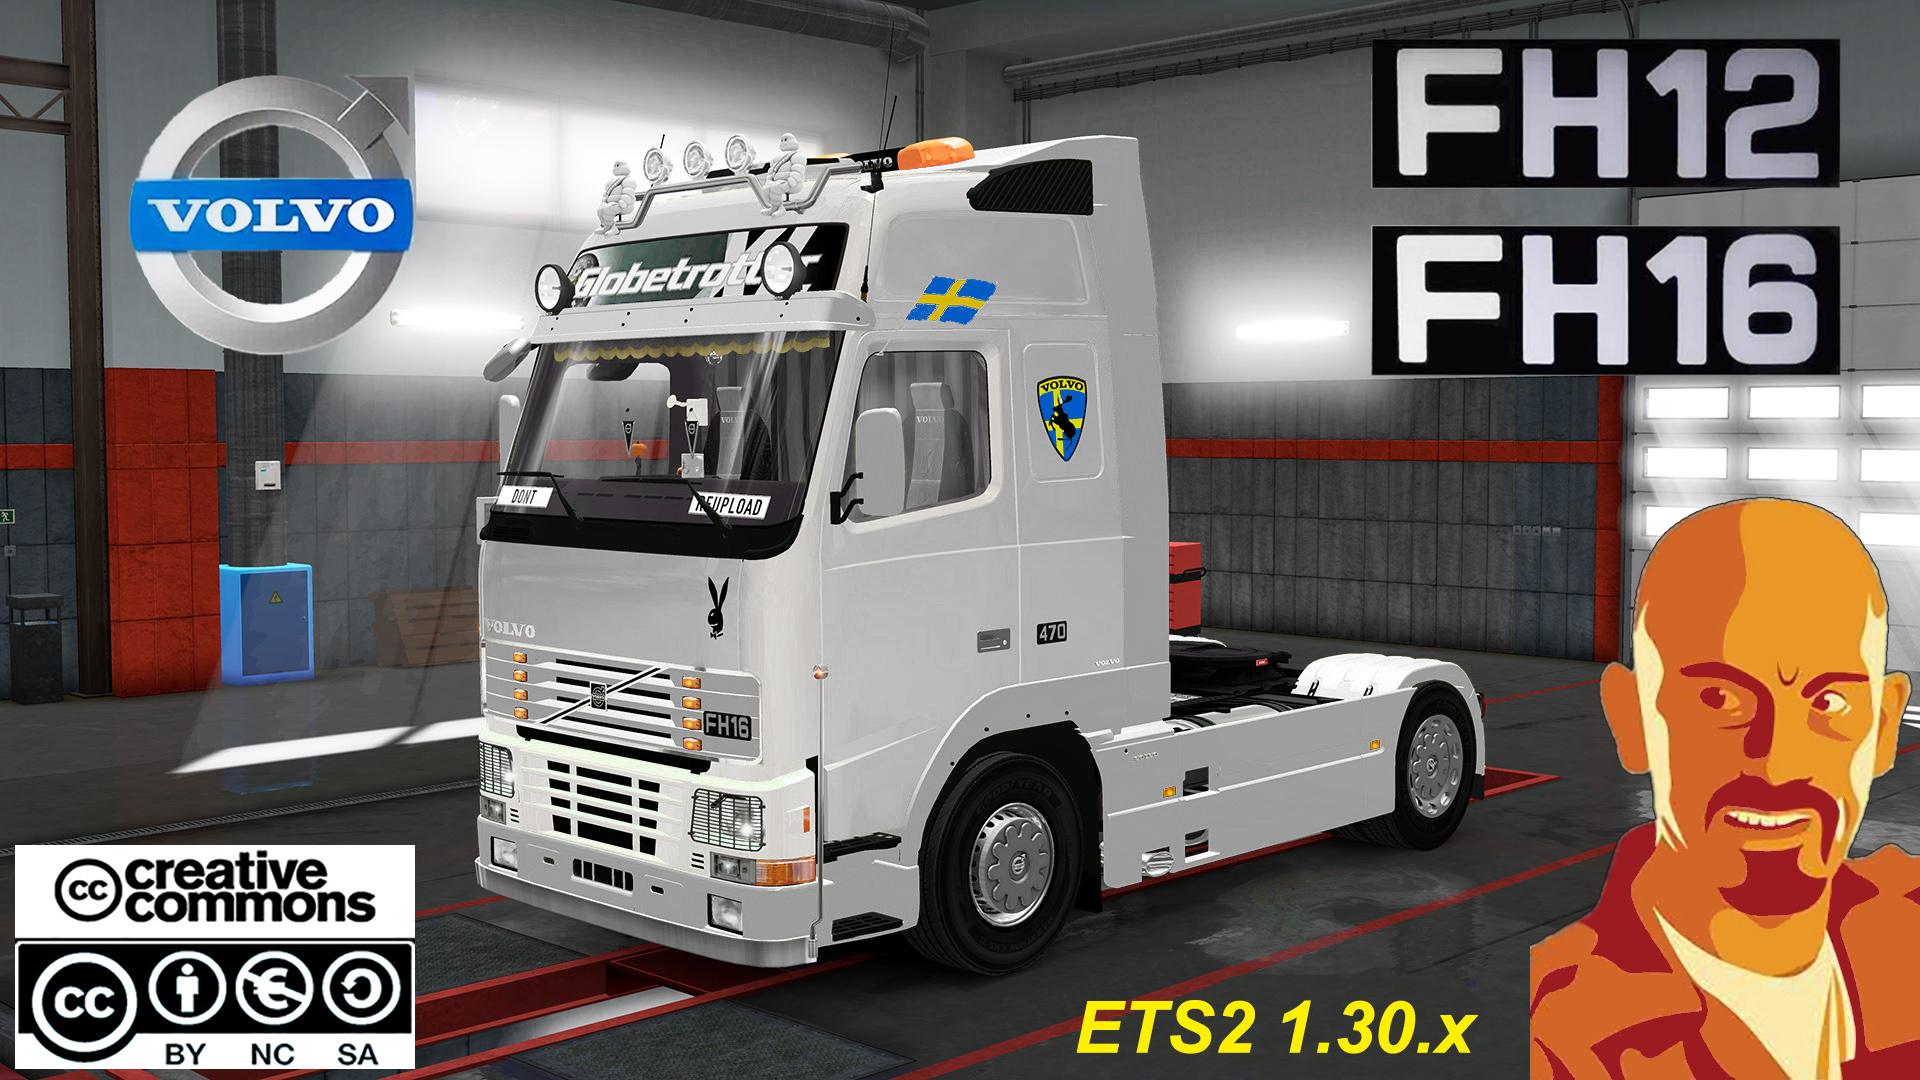 Photo of ETS2 -Volvo Fh Mk1 (Fh12 & Fh16)(1.30.x)